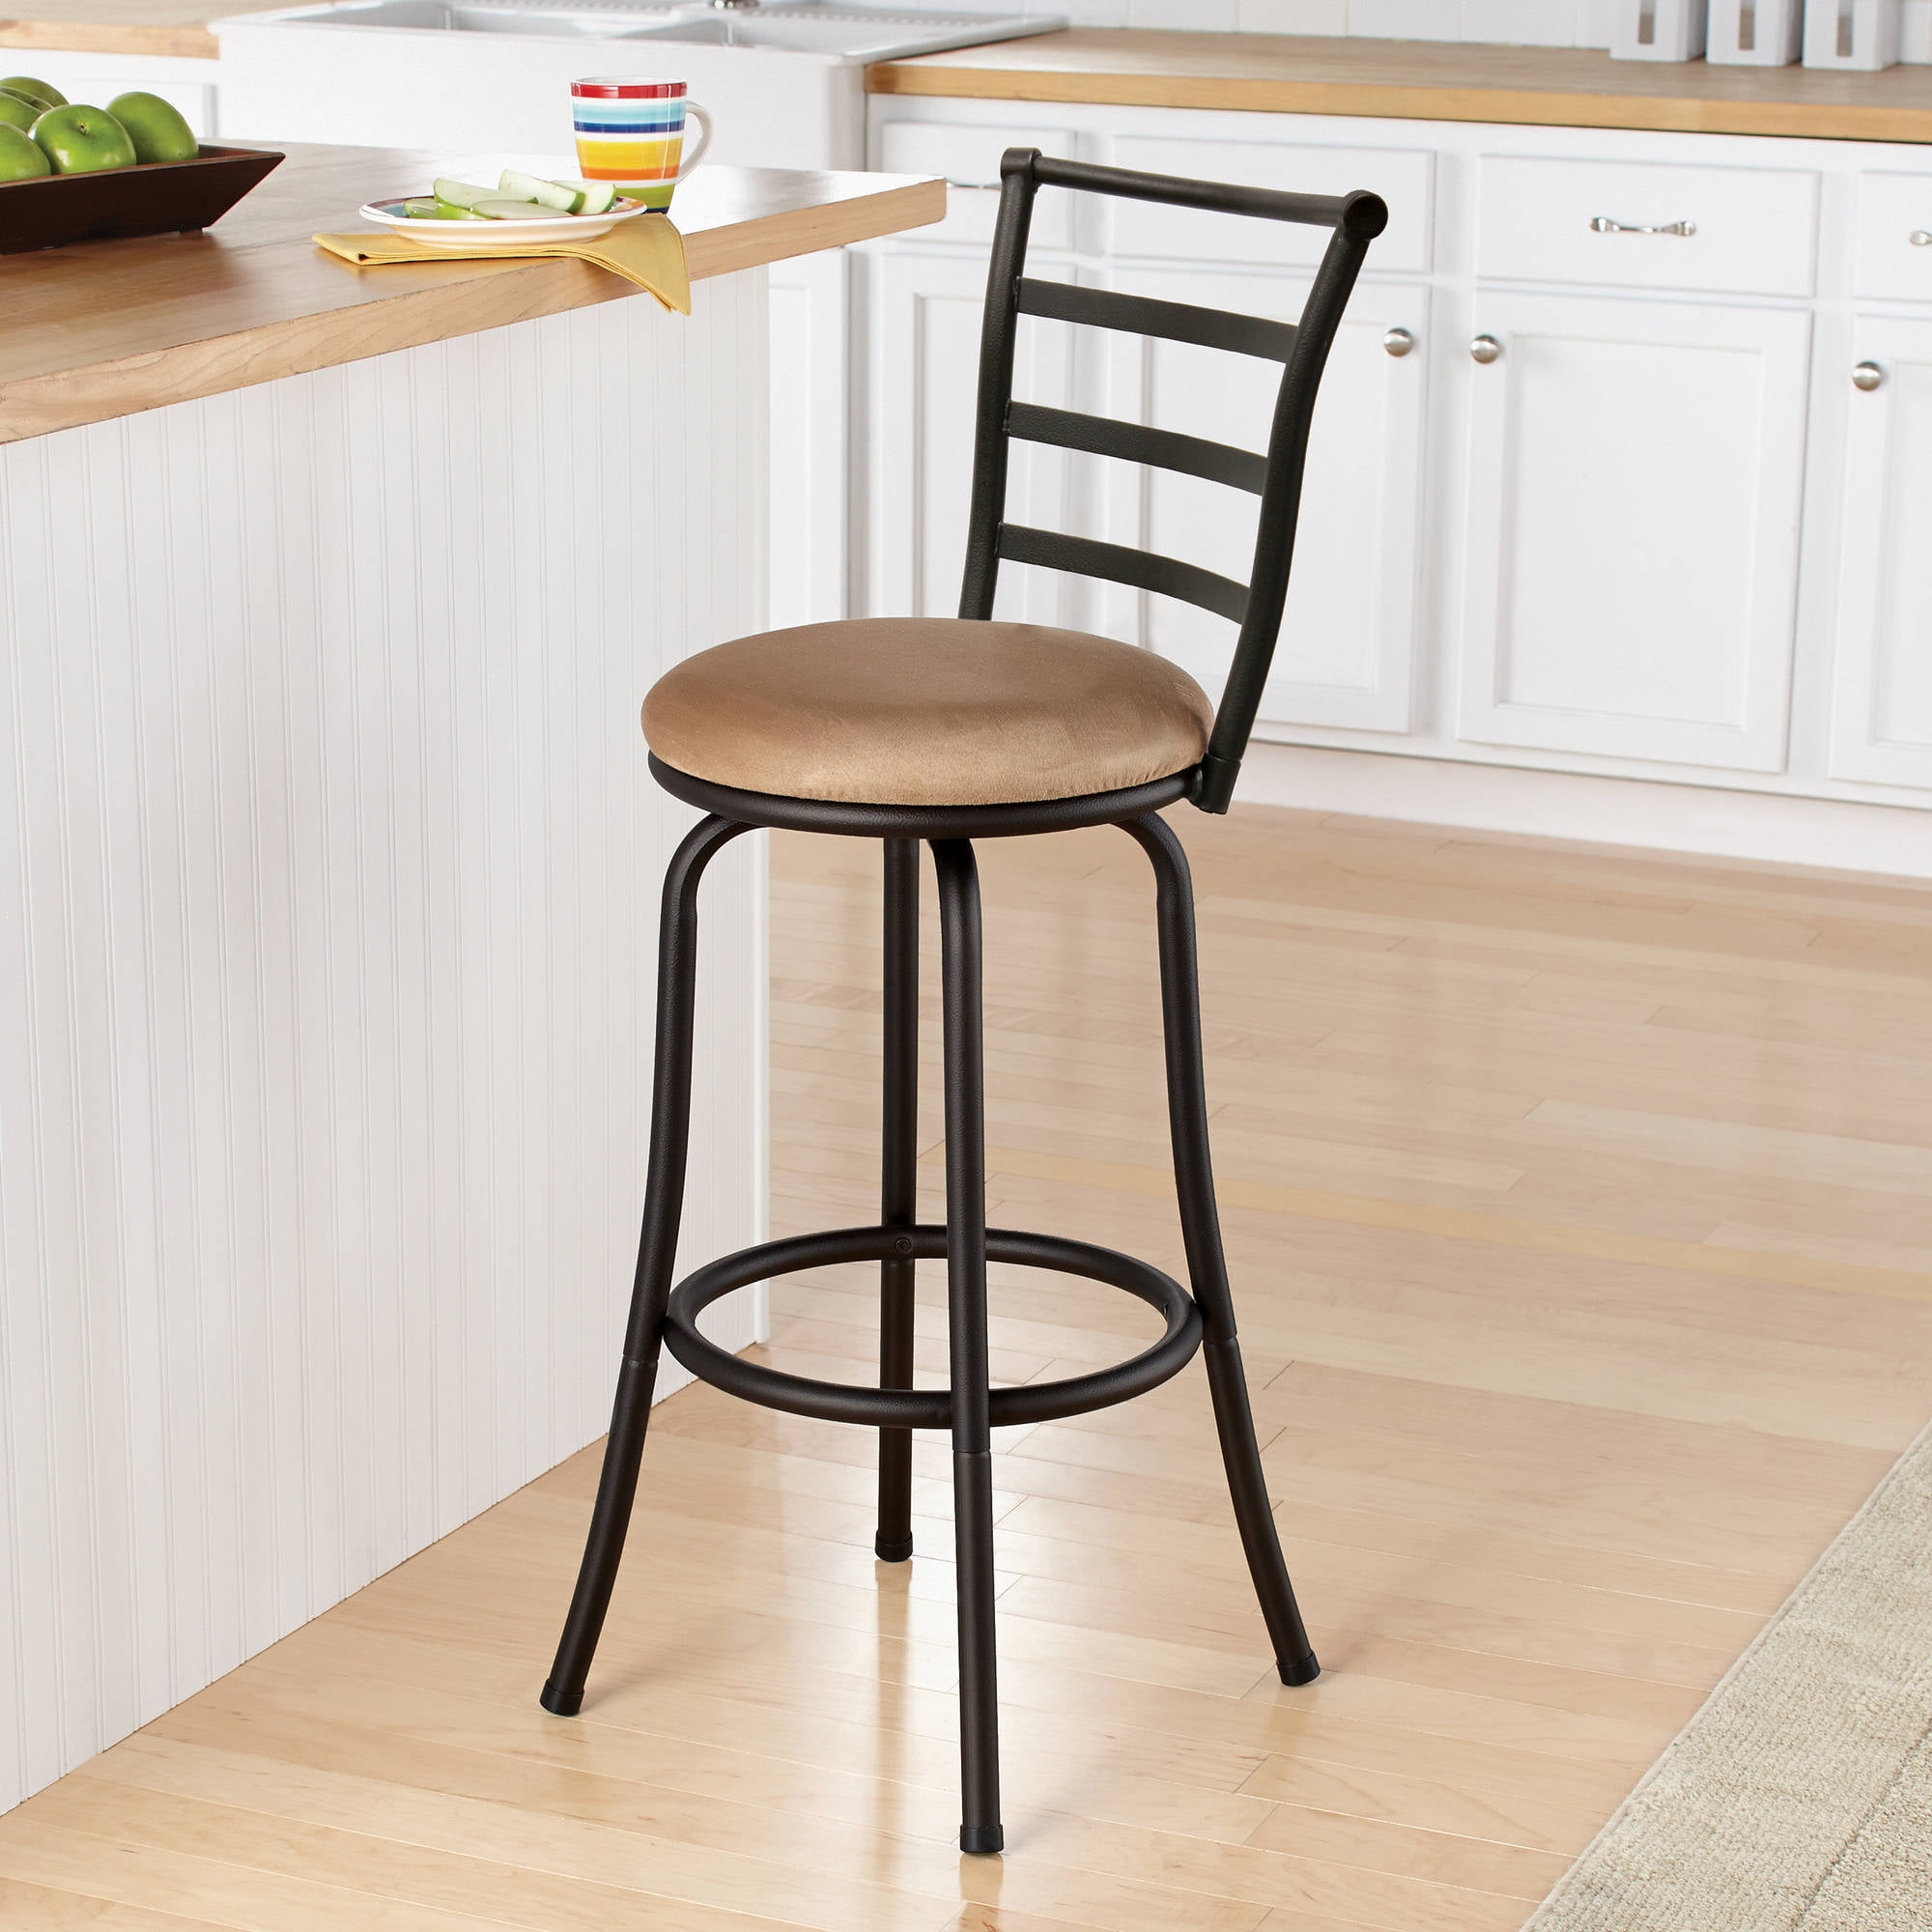 29 inch bar stools Mainstays Metal Swivel Bar Stool 29'', Set of 3, Black   Walmart.com 29 inch bar stools